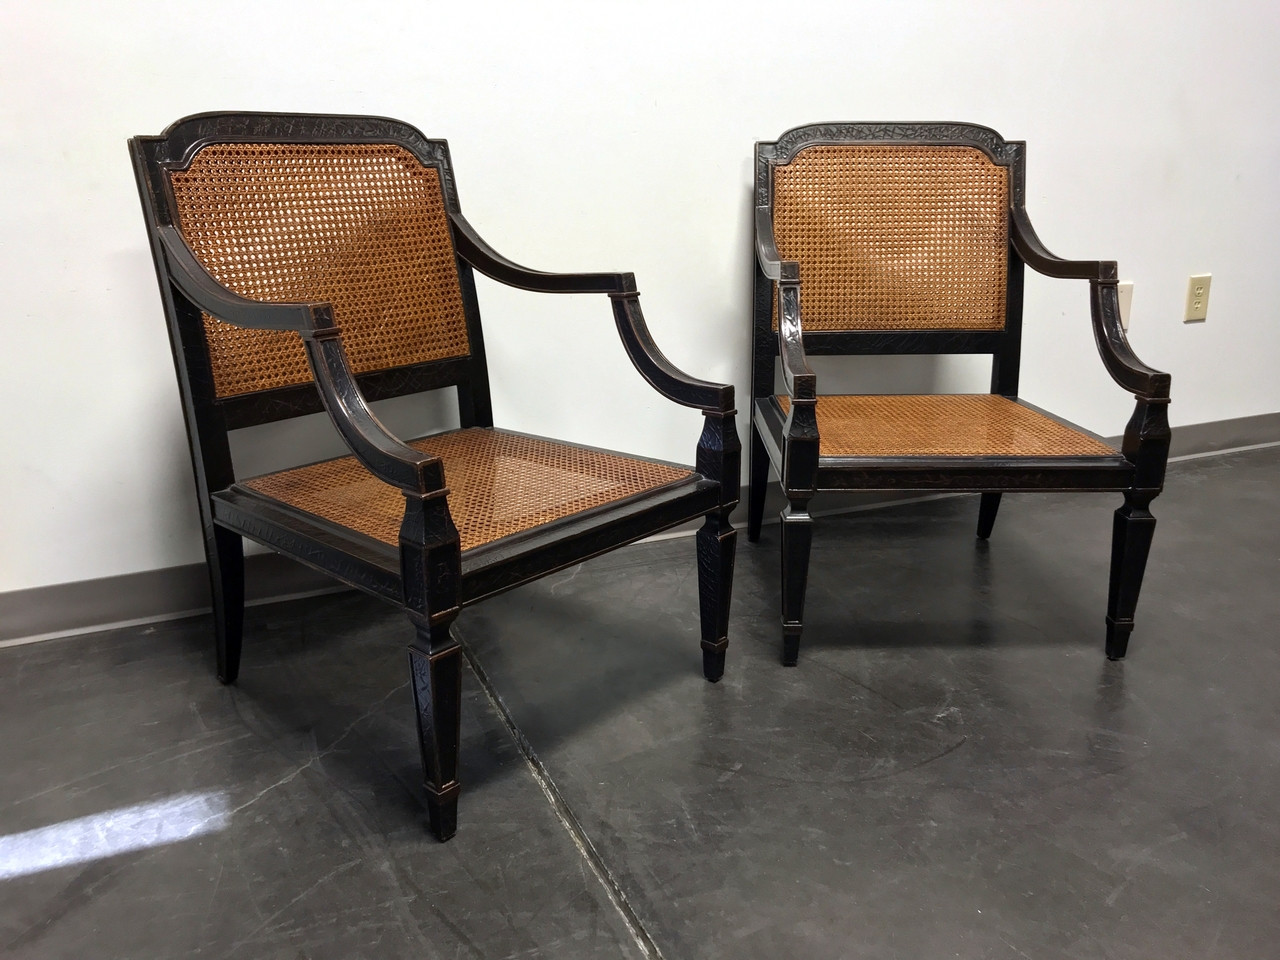 SOLD OUT BAKER Milling Road Sheraton Occassional Chairs Cane